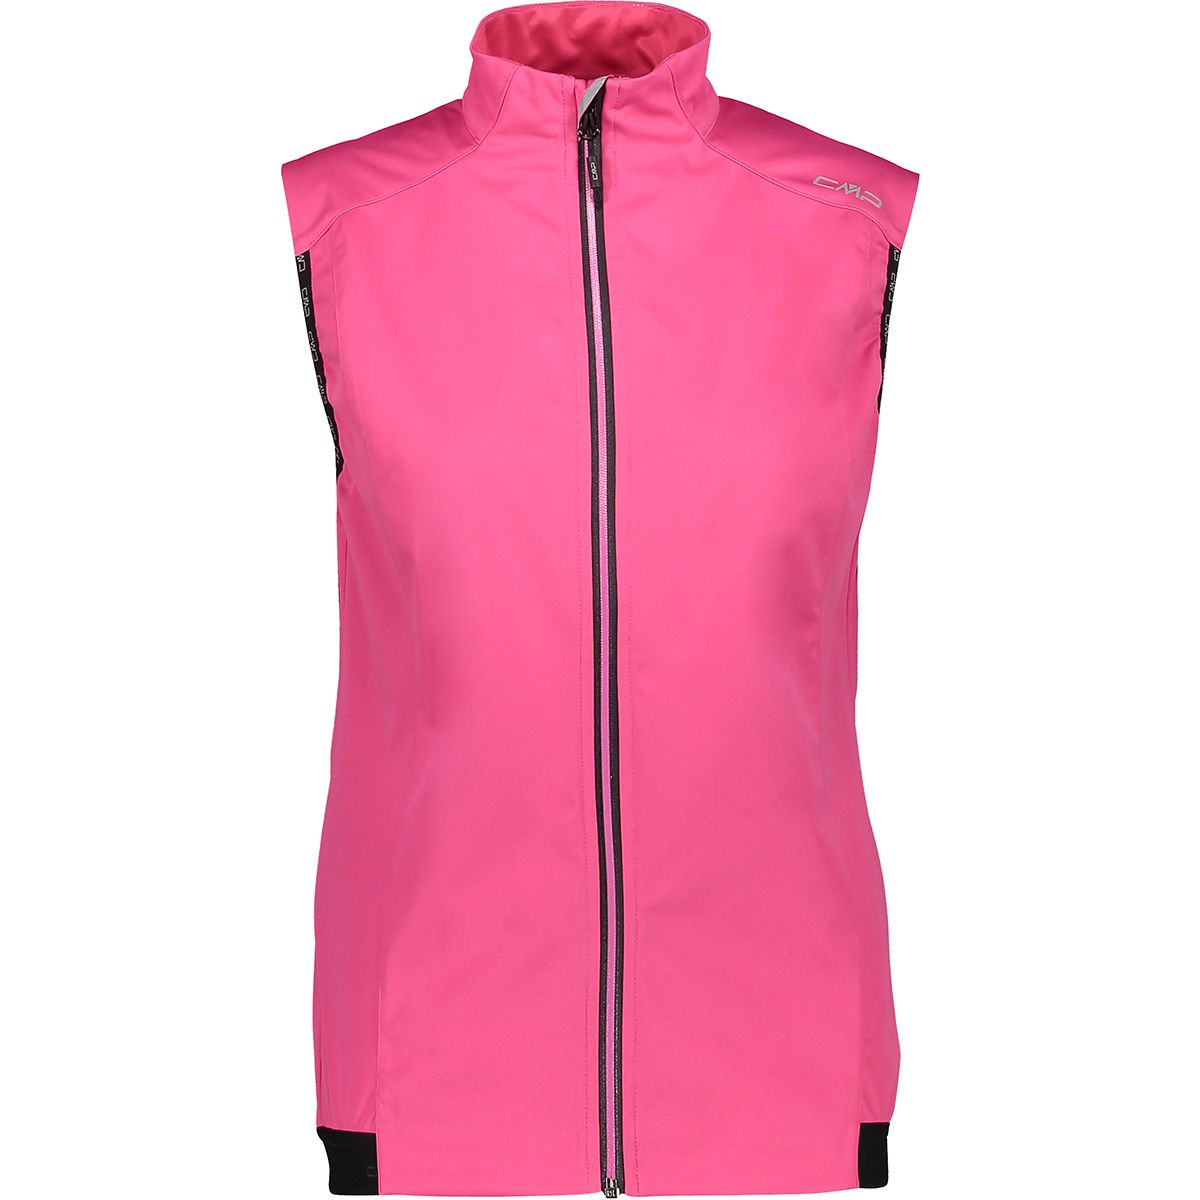 CMP Damen Light Softshell Weste (Größe XS, Pink) | Softshellwesten > Damen